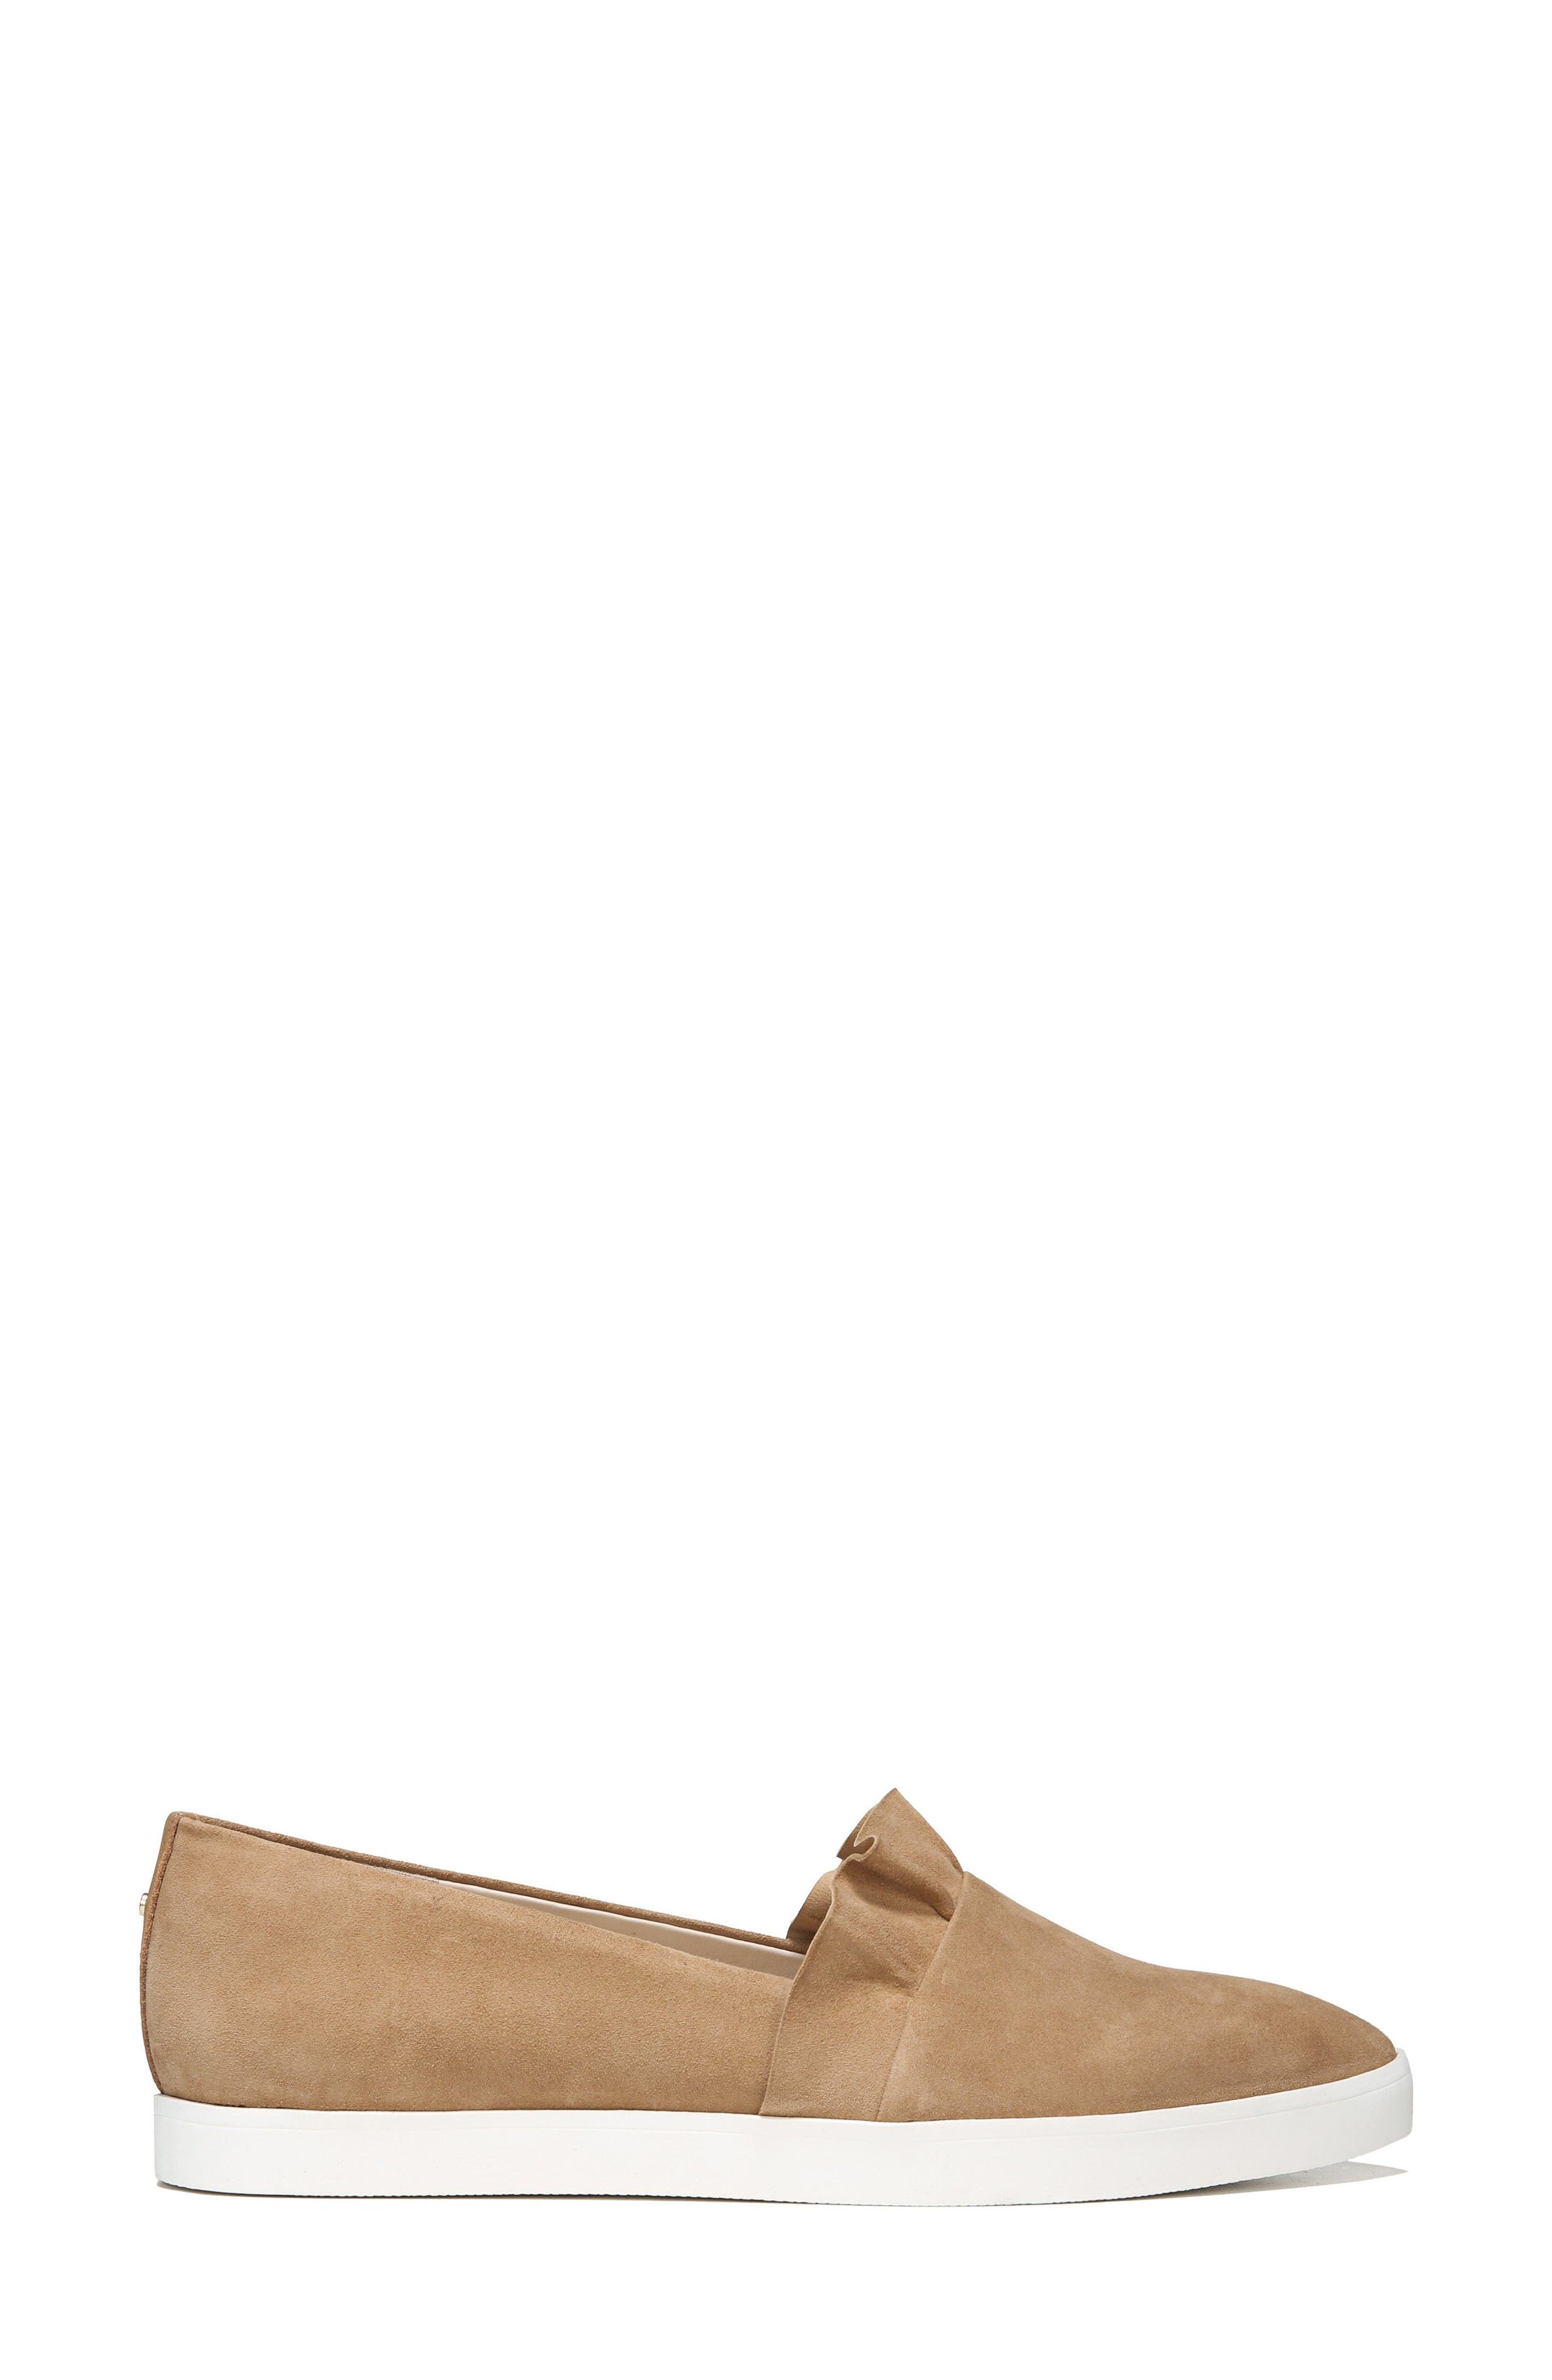 Vienna Slip-On Sneaker,                             Alternate thumbnail 3, color,                             Nude Suede